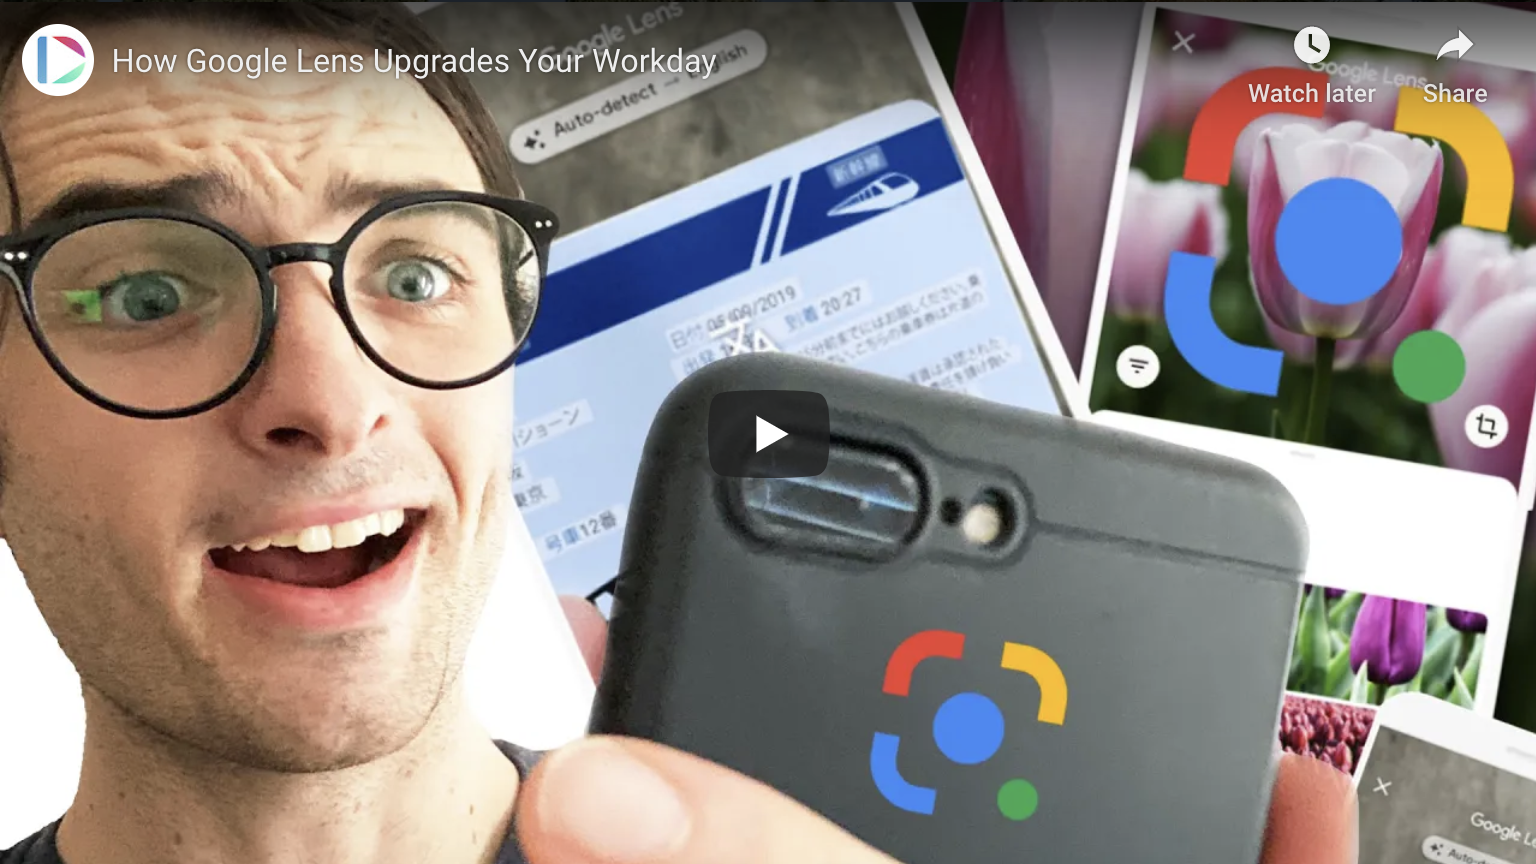 How Google Lens Upgrades Your Workday